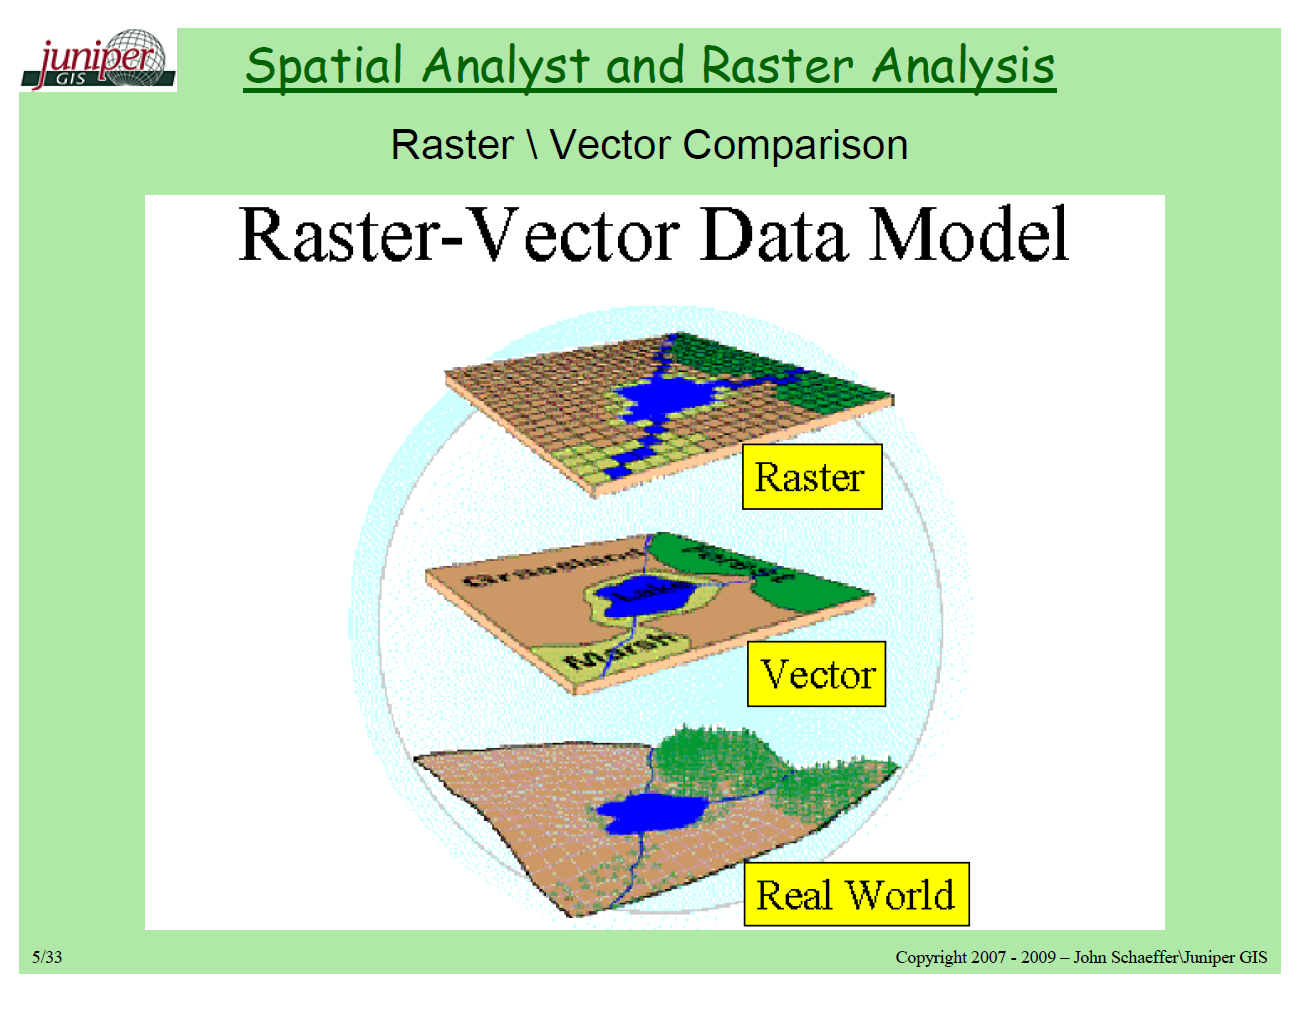 10 Vector Vs Raster Data Model Images